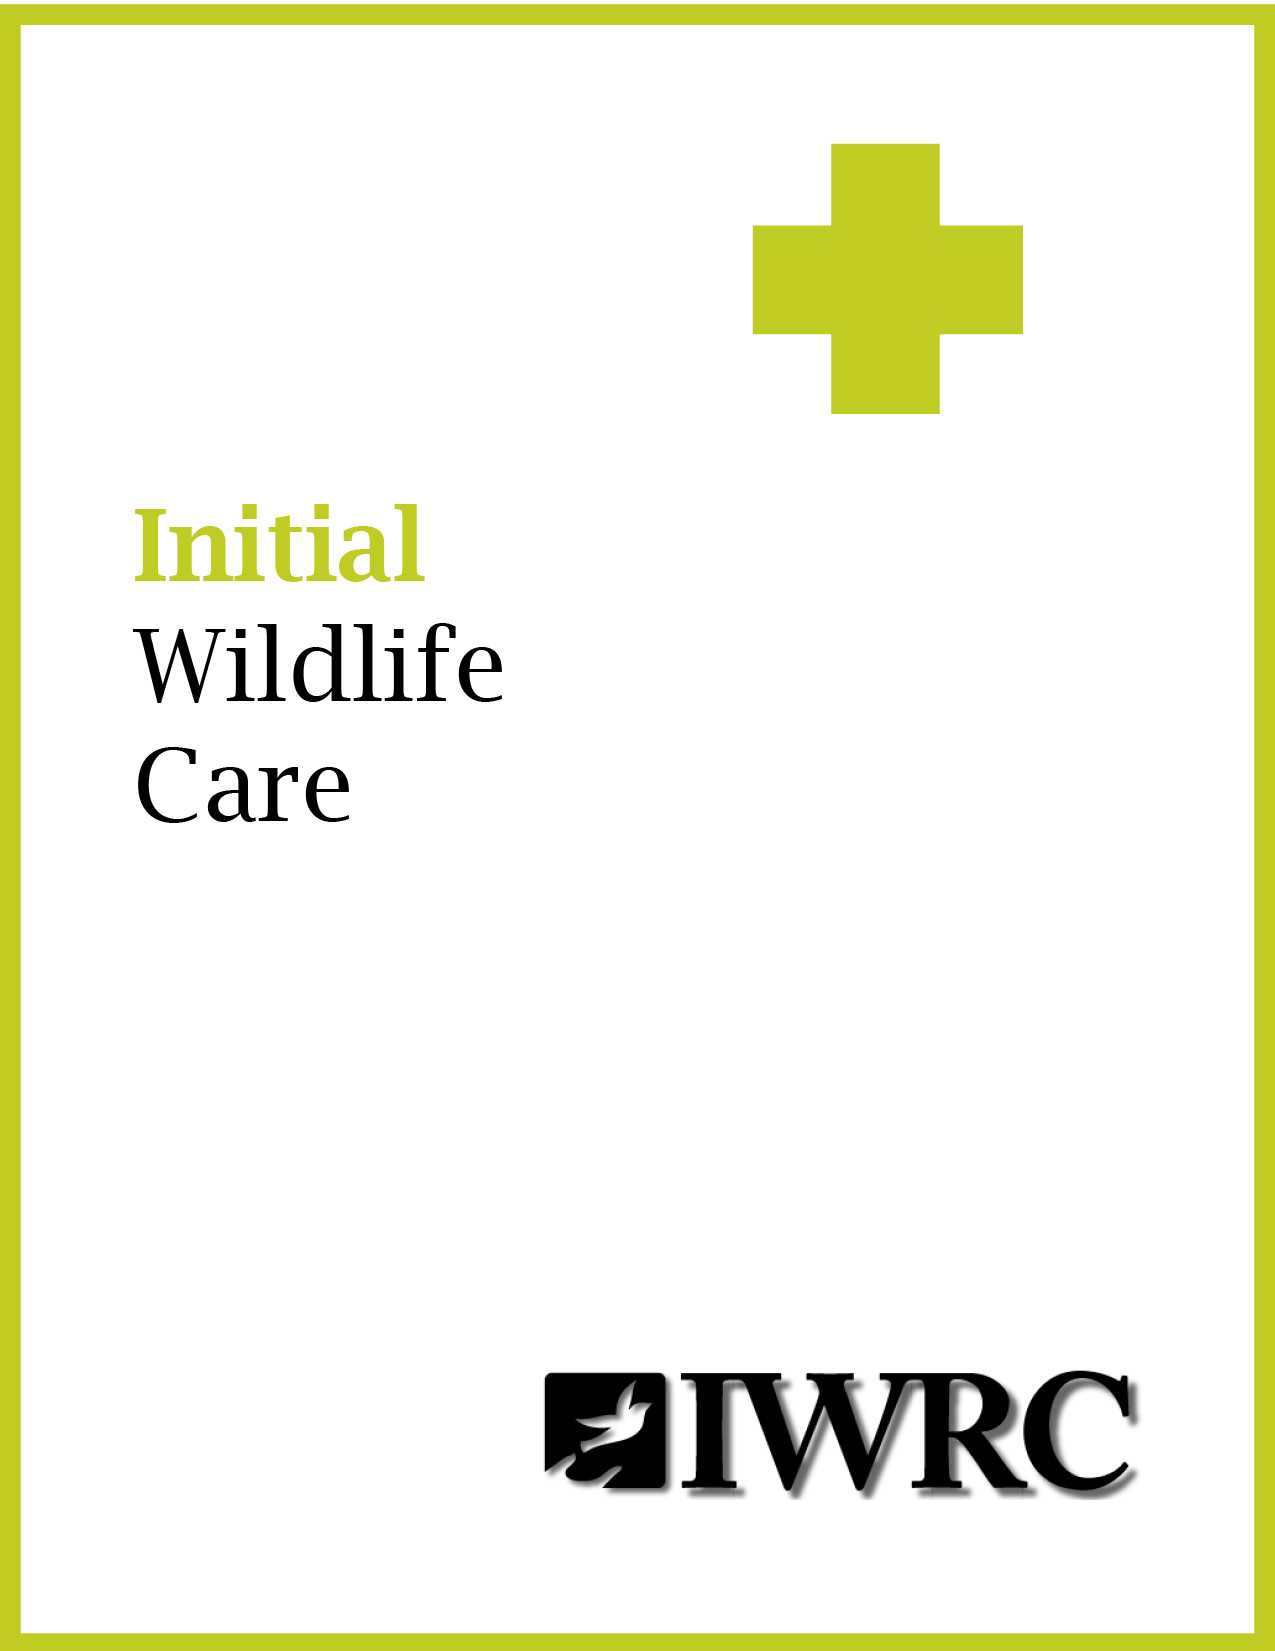 Initial Wildlife Care Manua with outline